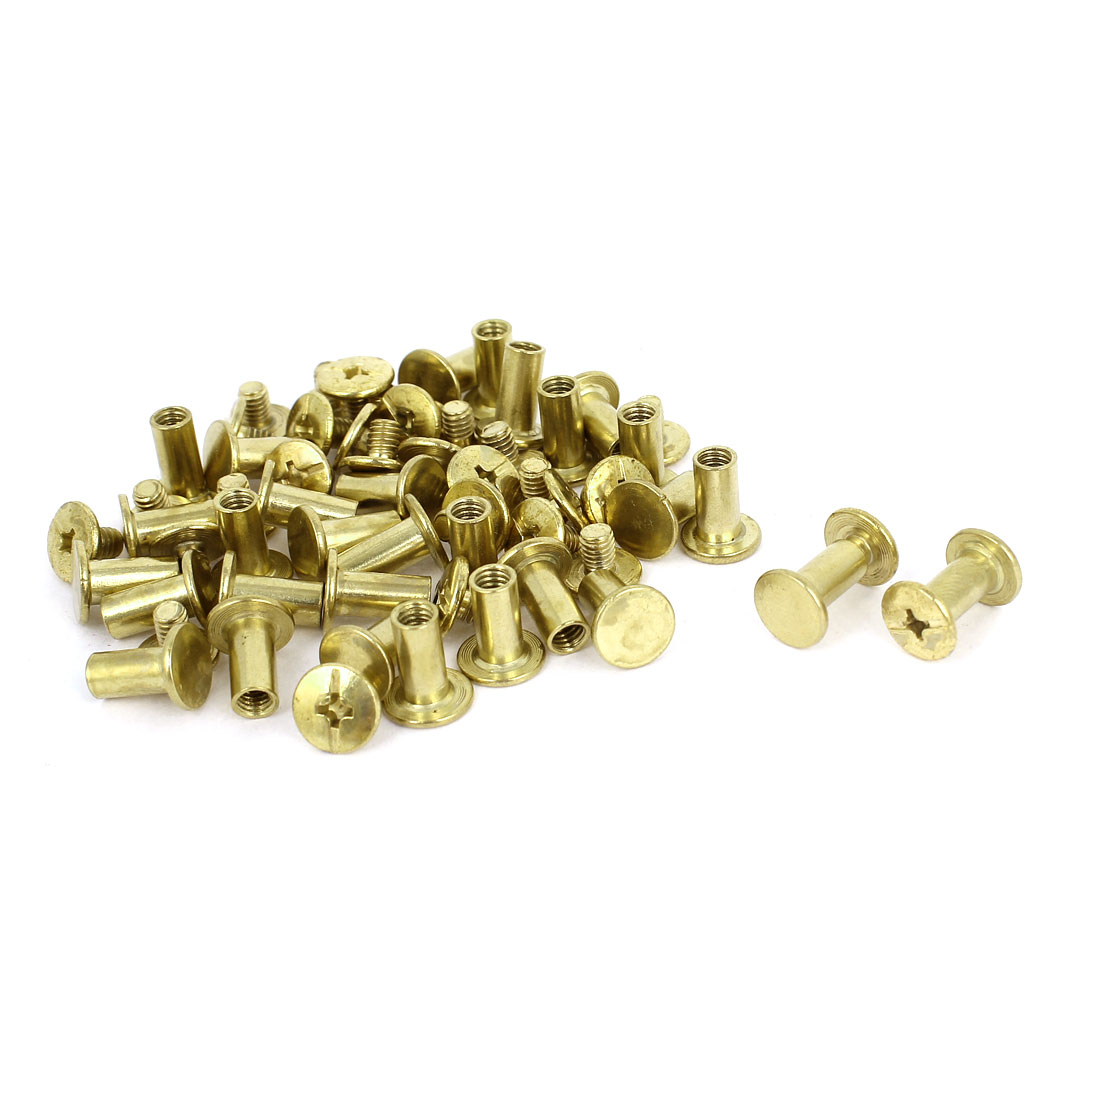 Brass Plated 5x10mm Binding Chicago Screw Post 30pcs for Album Leather